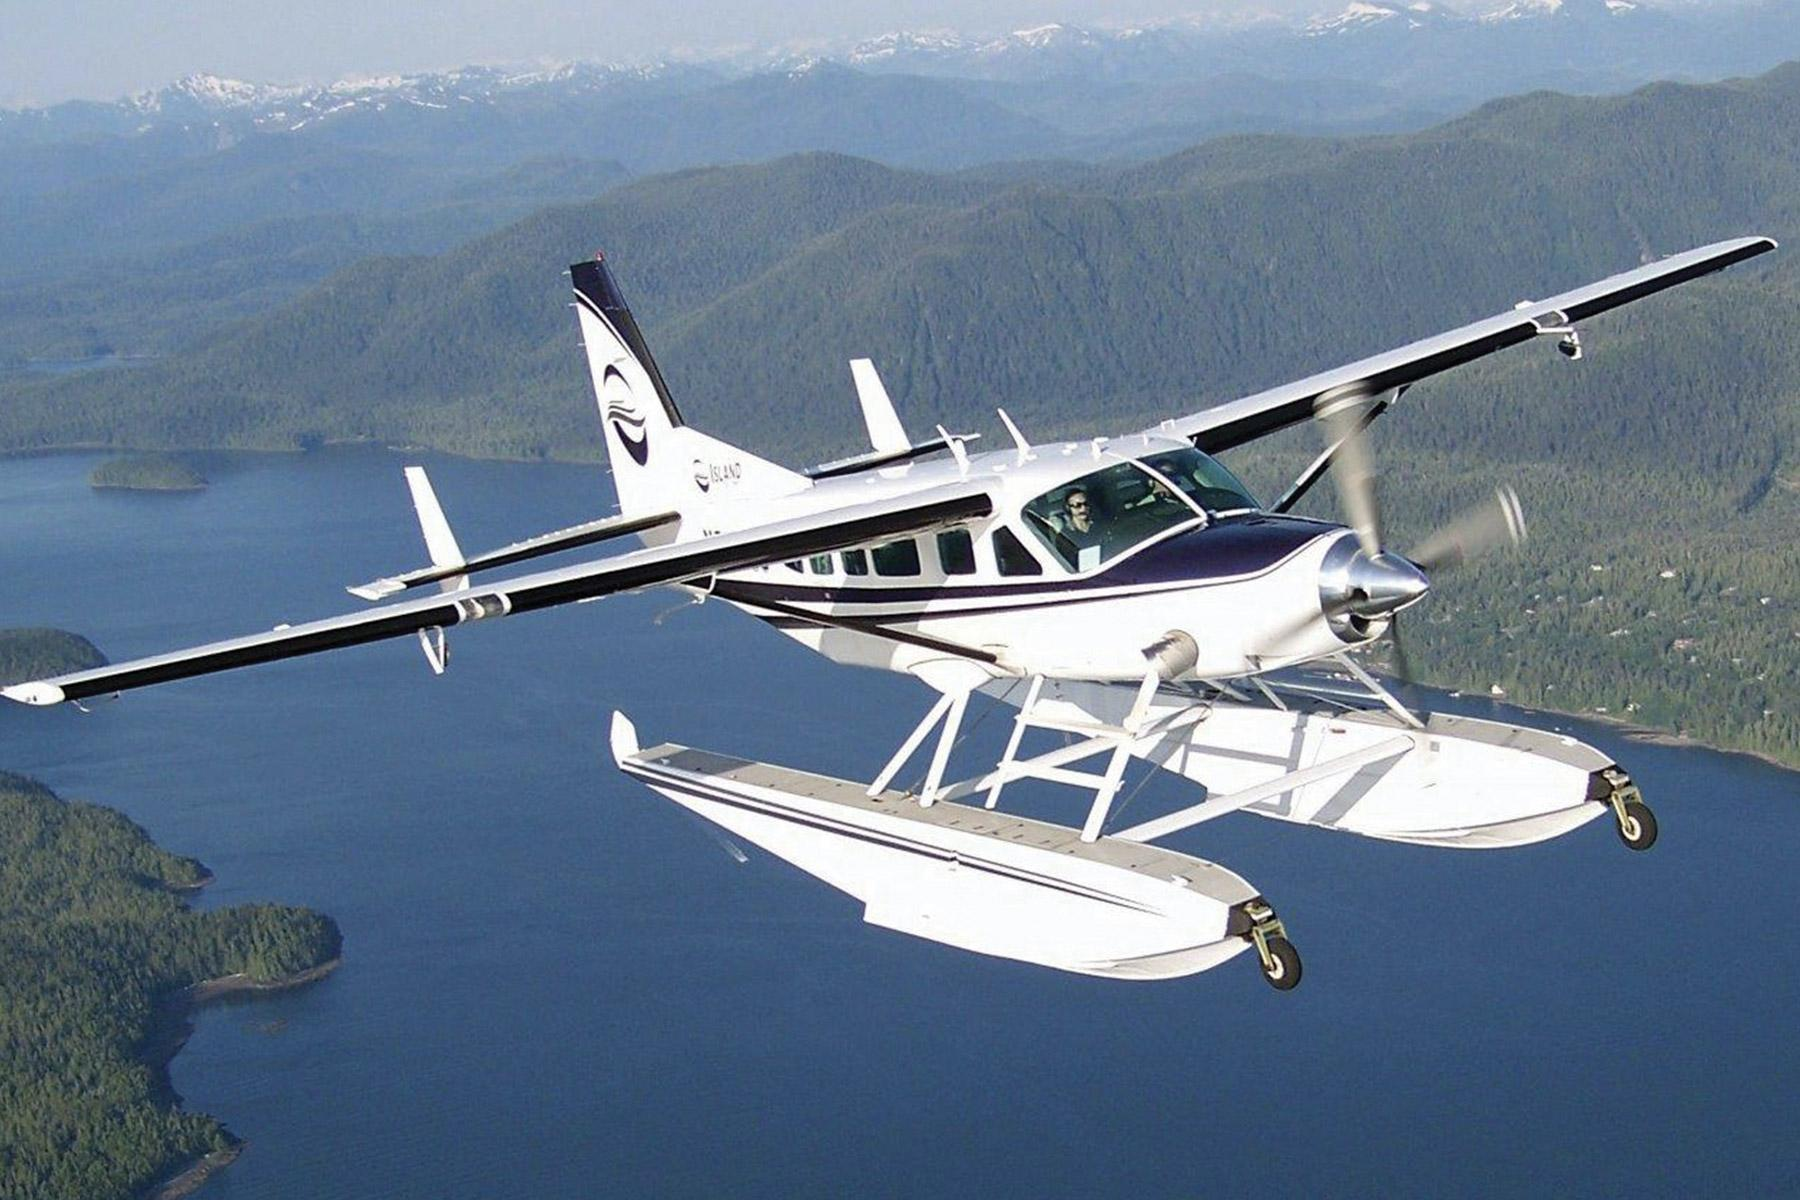 Southeast Alaska has several land and aerial adventures to experience